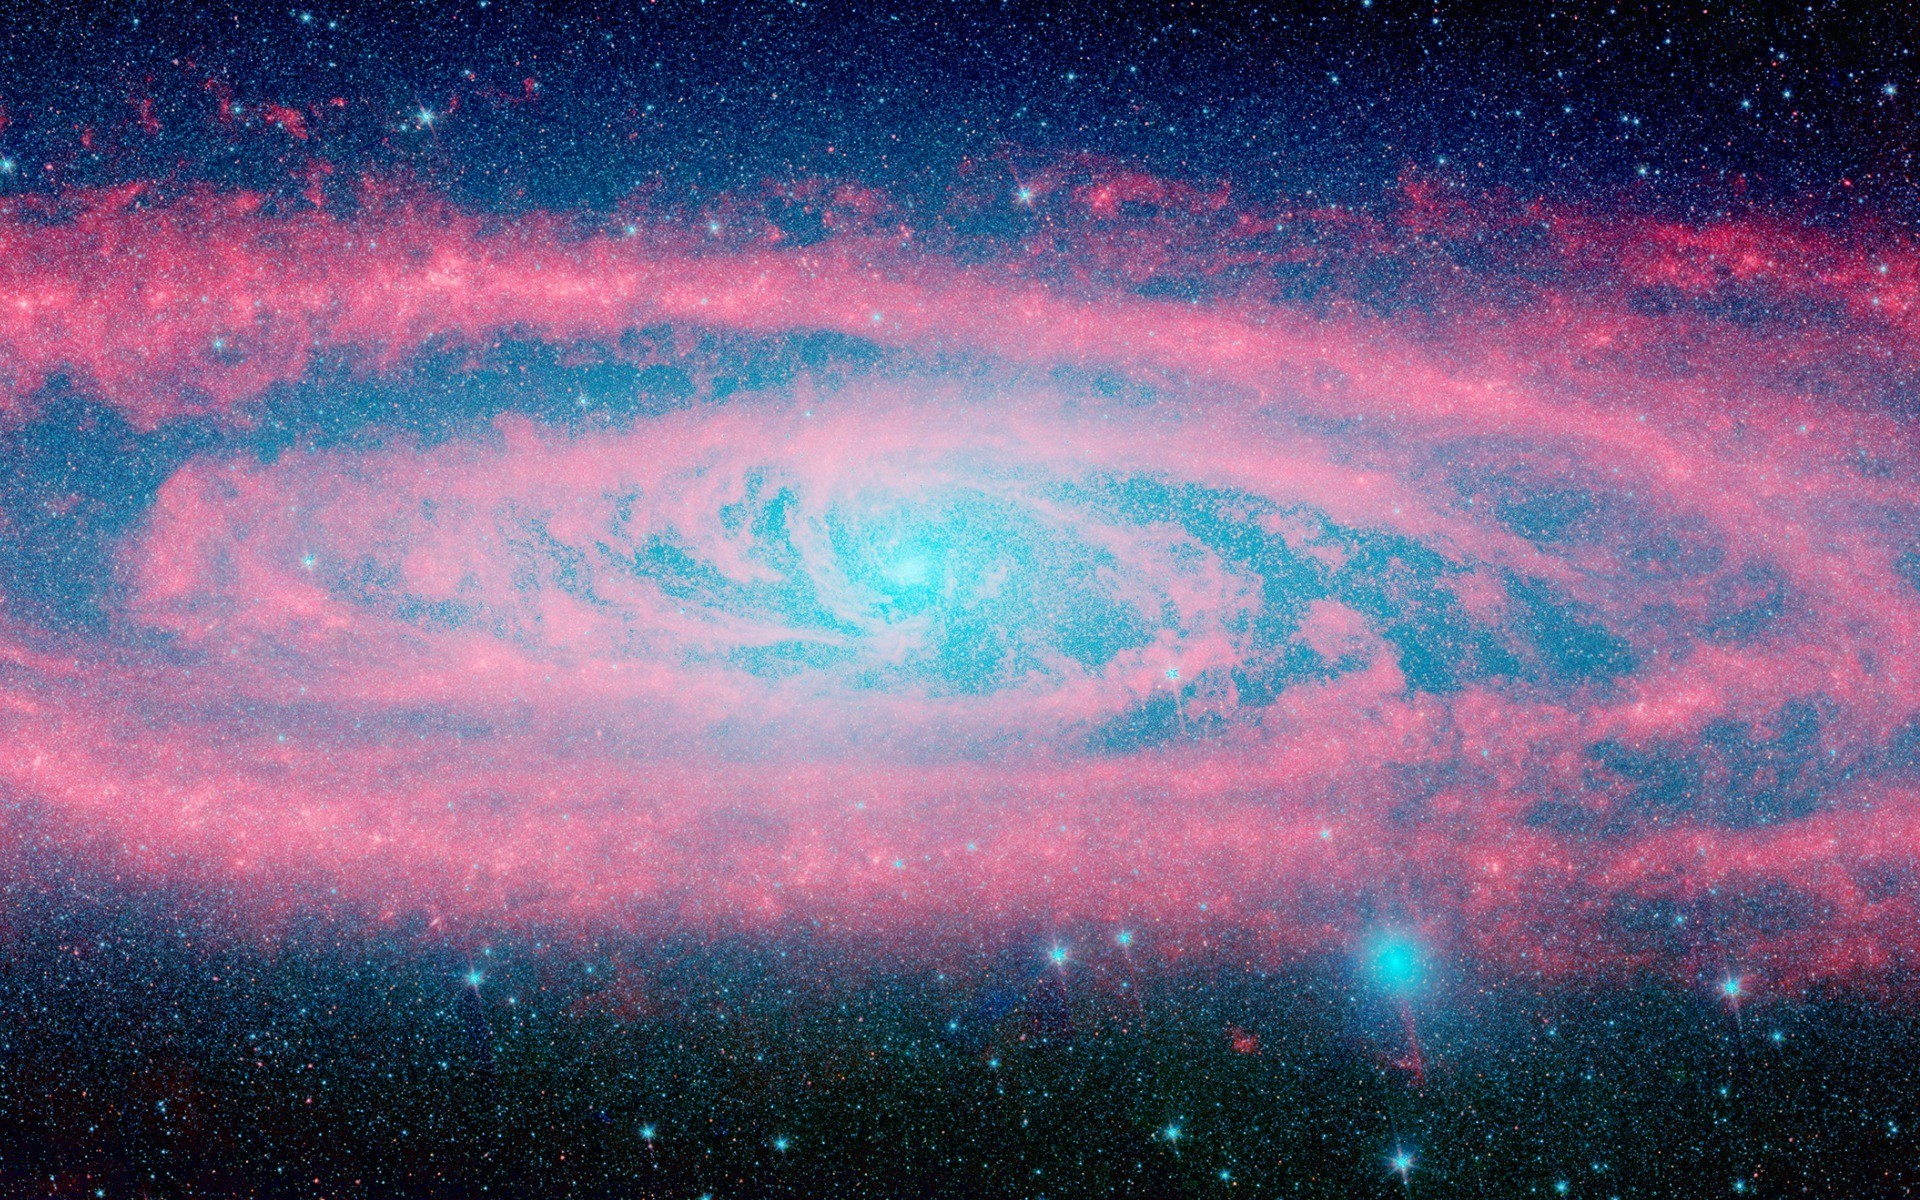 1920x1200 Free HD Galaxy Backgrounds Tumblr Download Wallpaper